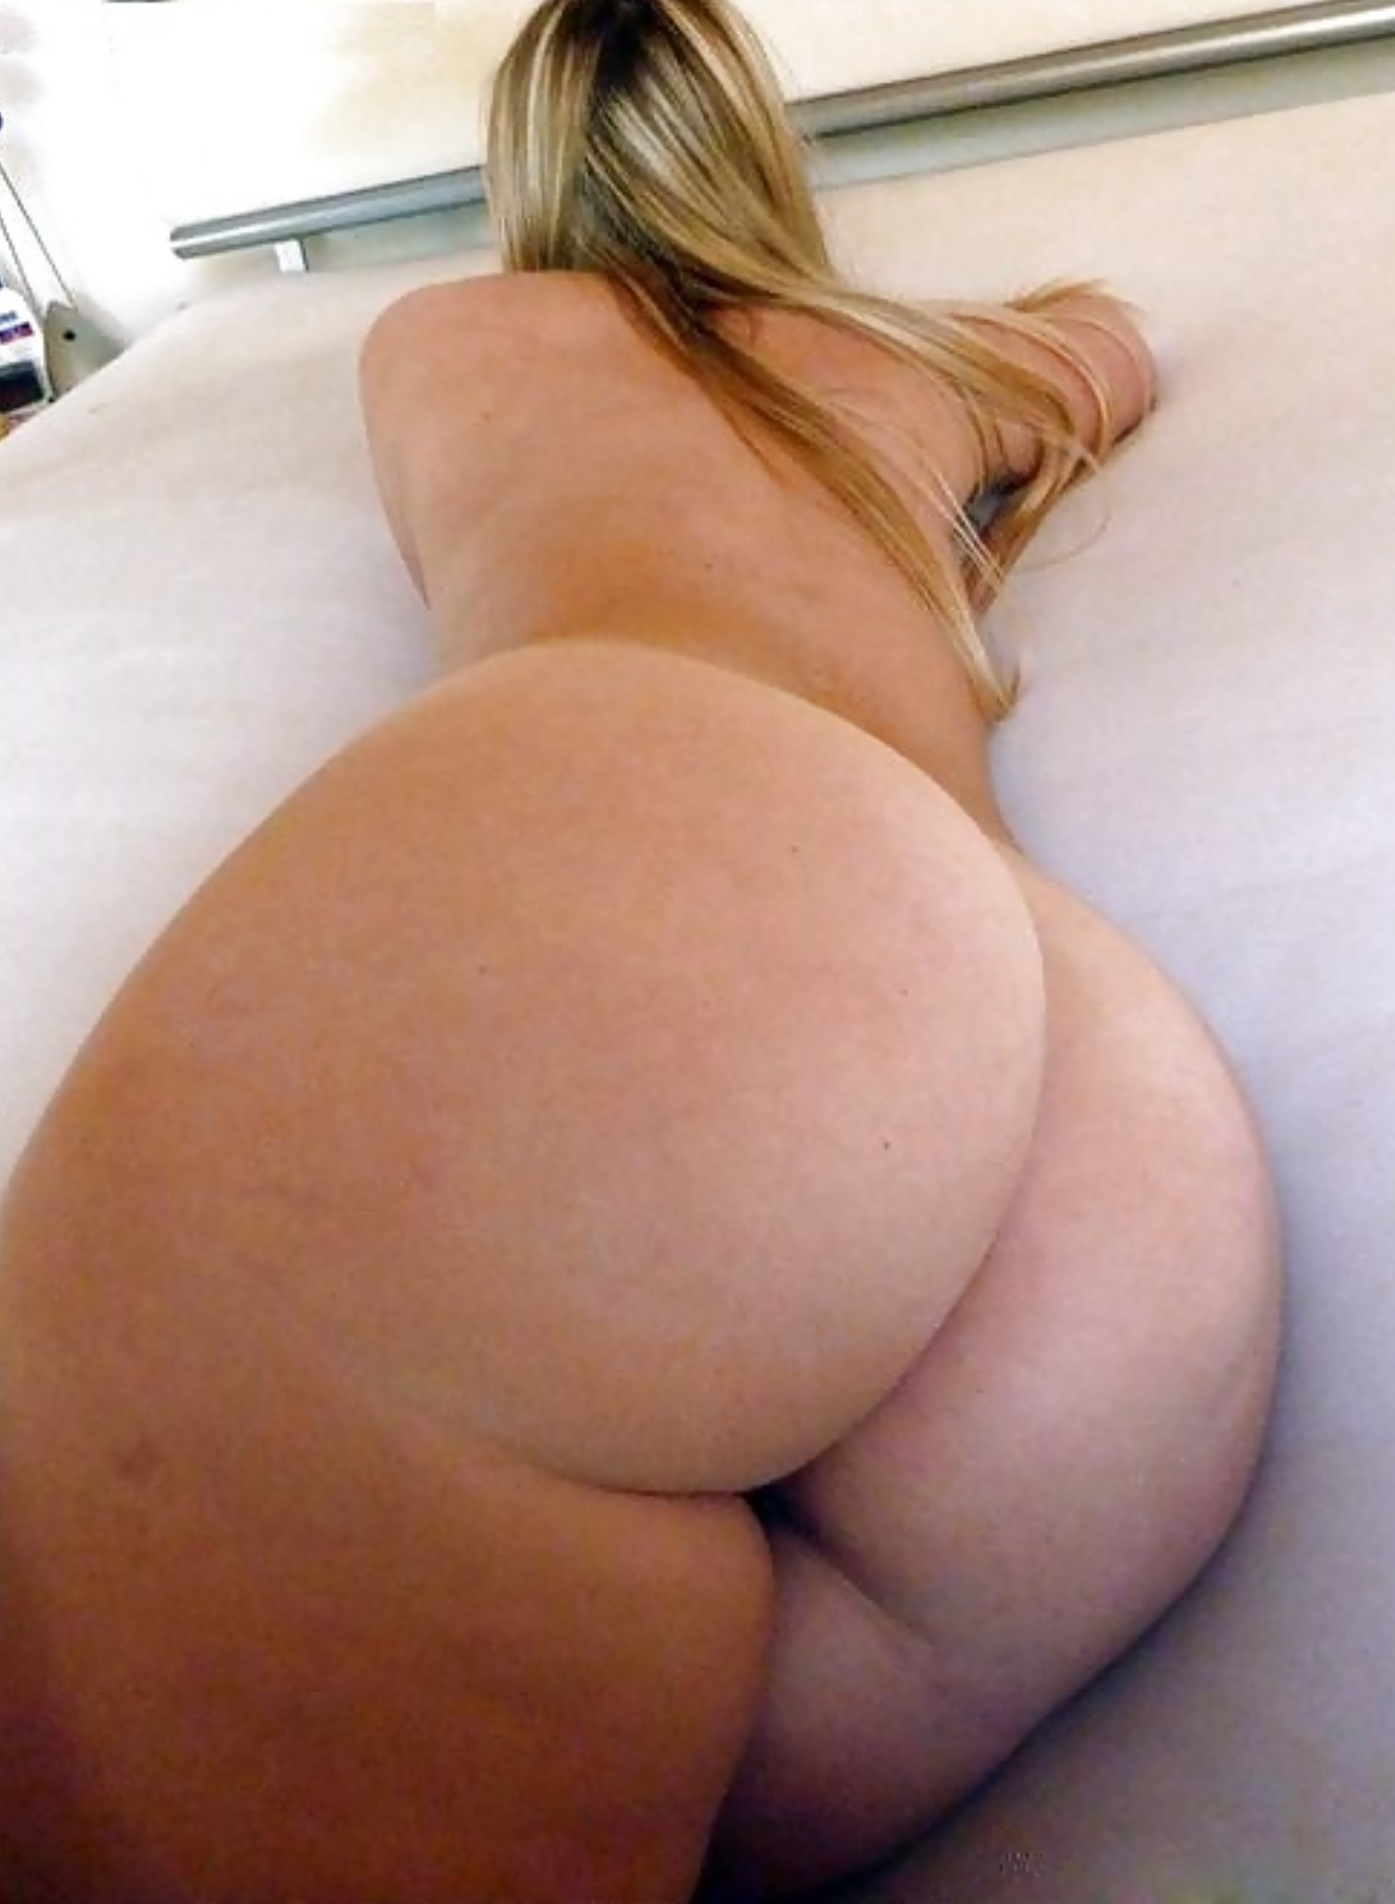 Thick Ass Blonde Nude